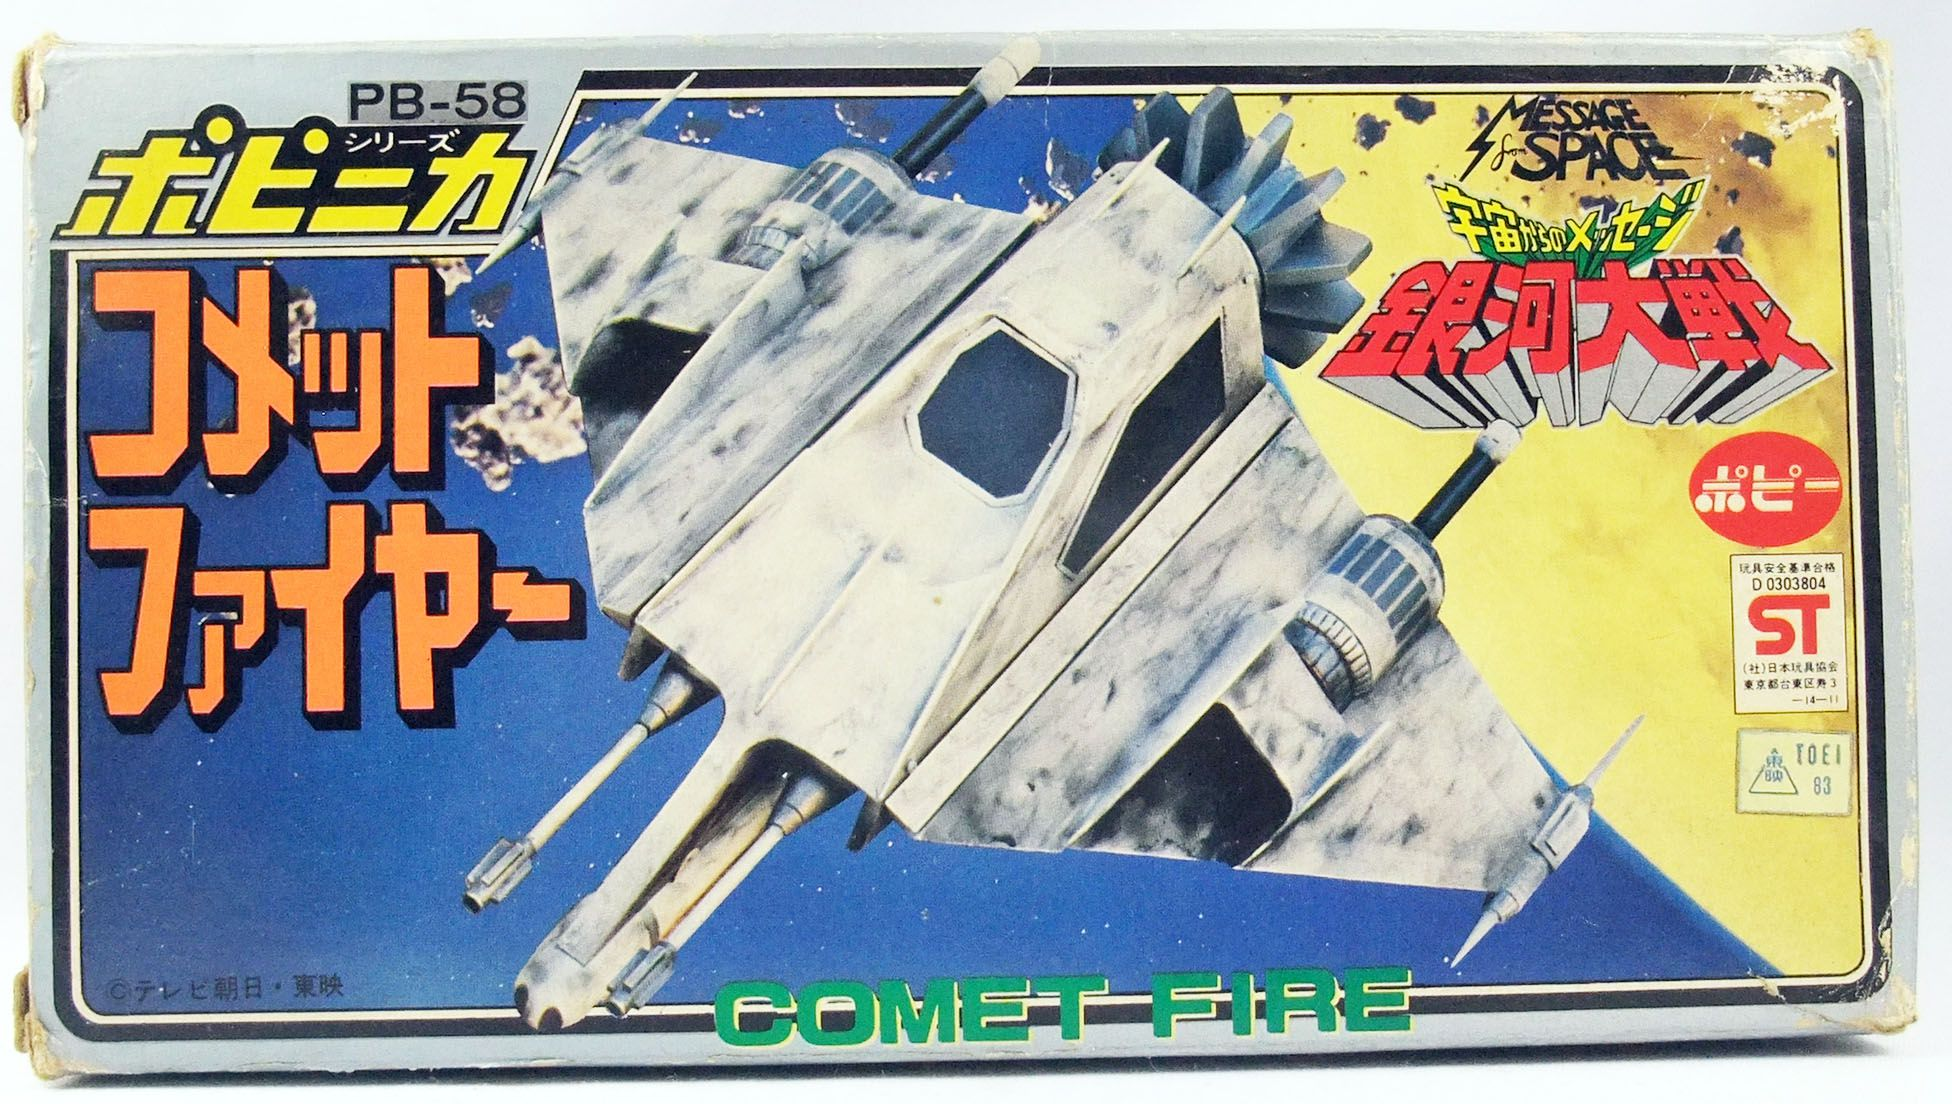 Message from Space - Die-cast vehicle Popy Japan - Comet Fire